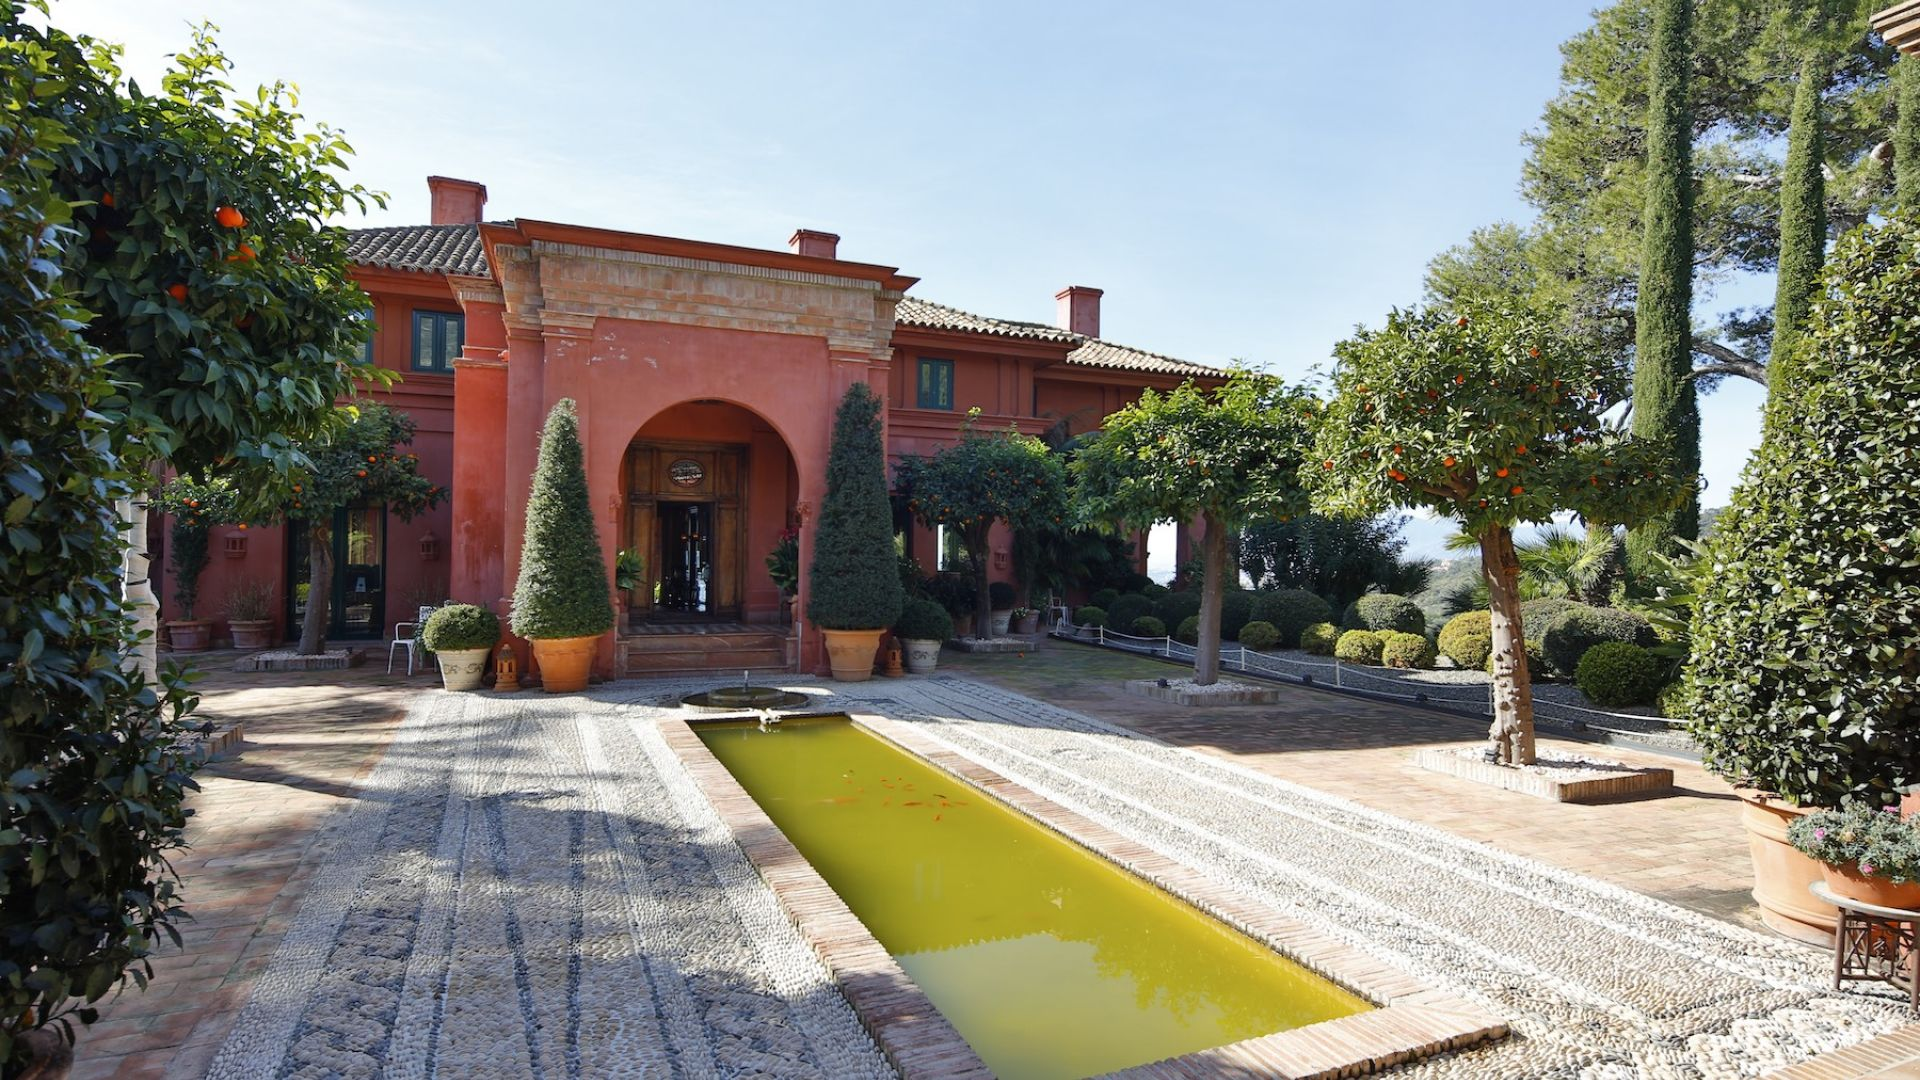 独户住宅 为 销售 在 Magnificent residence located in the hills above Marbella Marbella, Costa Del Sol 29600 西班牙